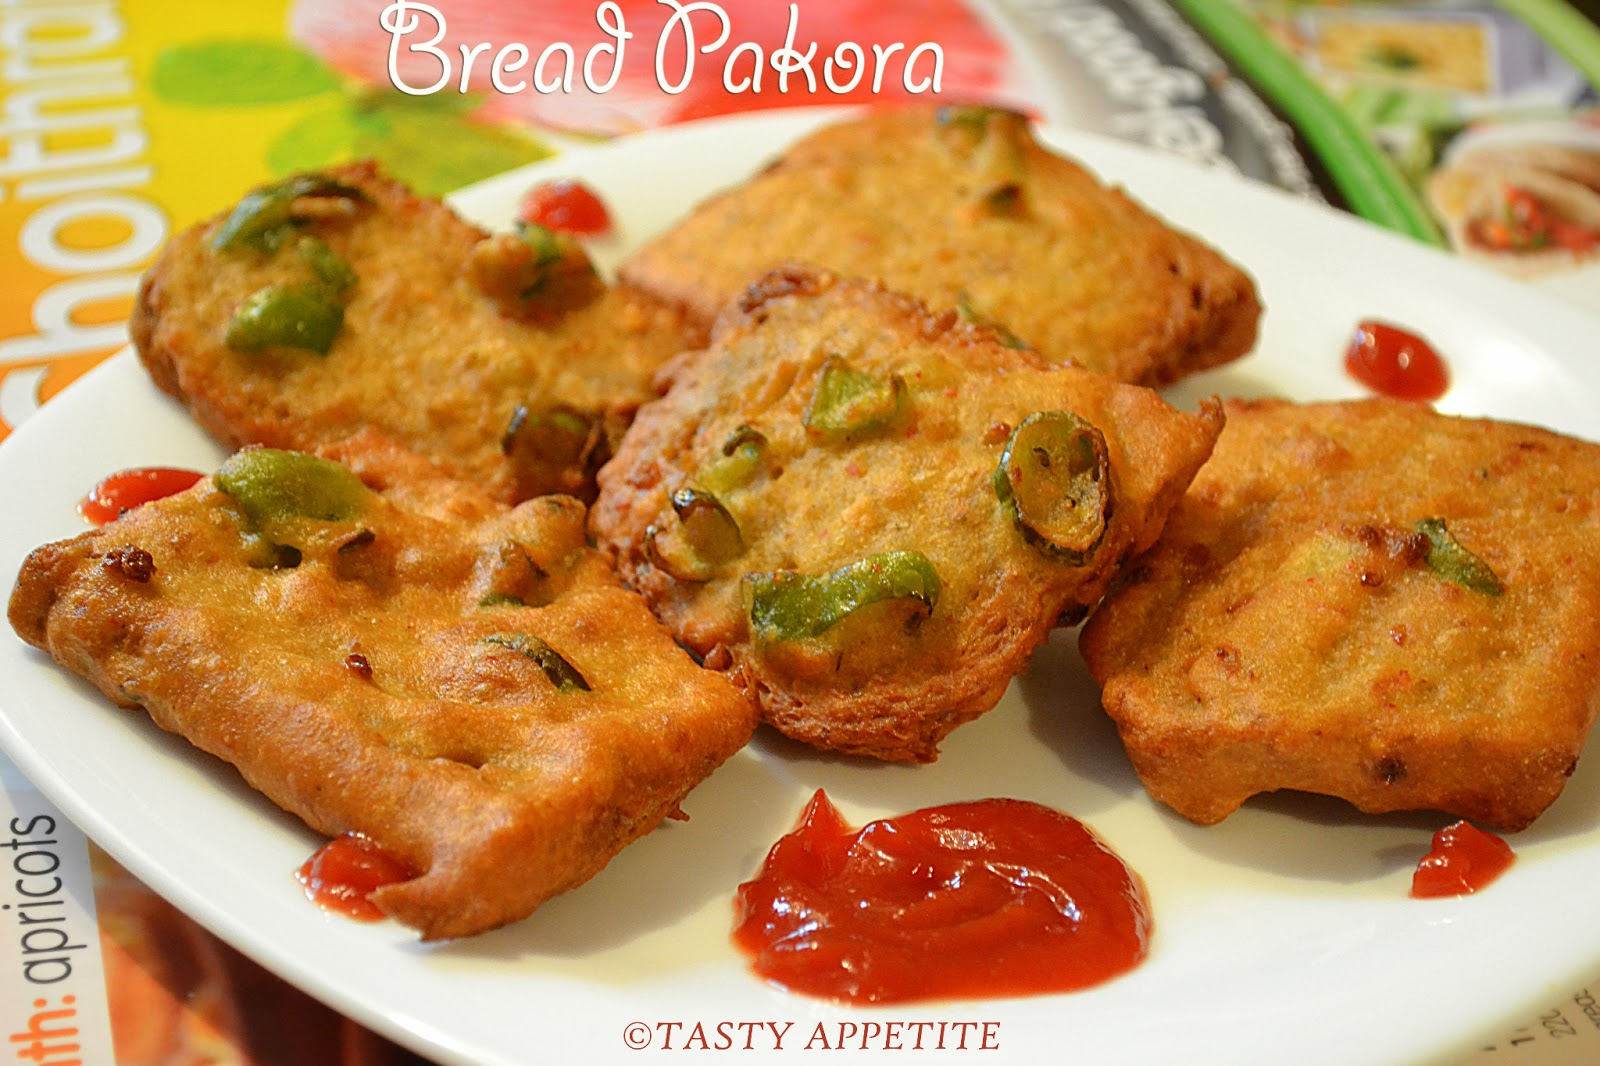 How to make bread pakora fritter recipes indian snacks recipes forumfinder Images